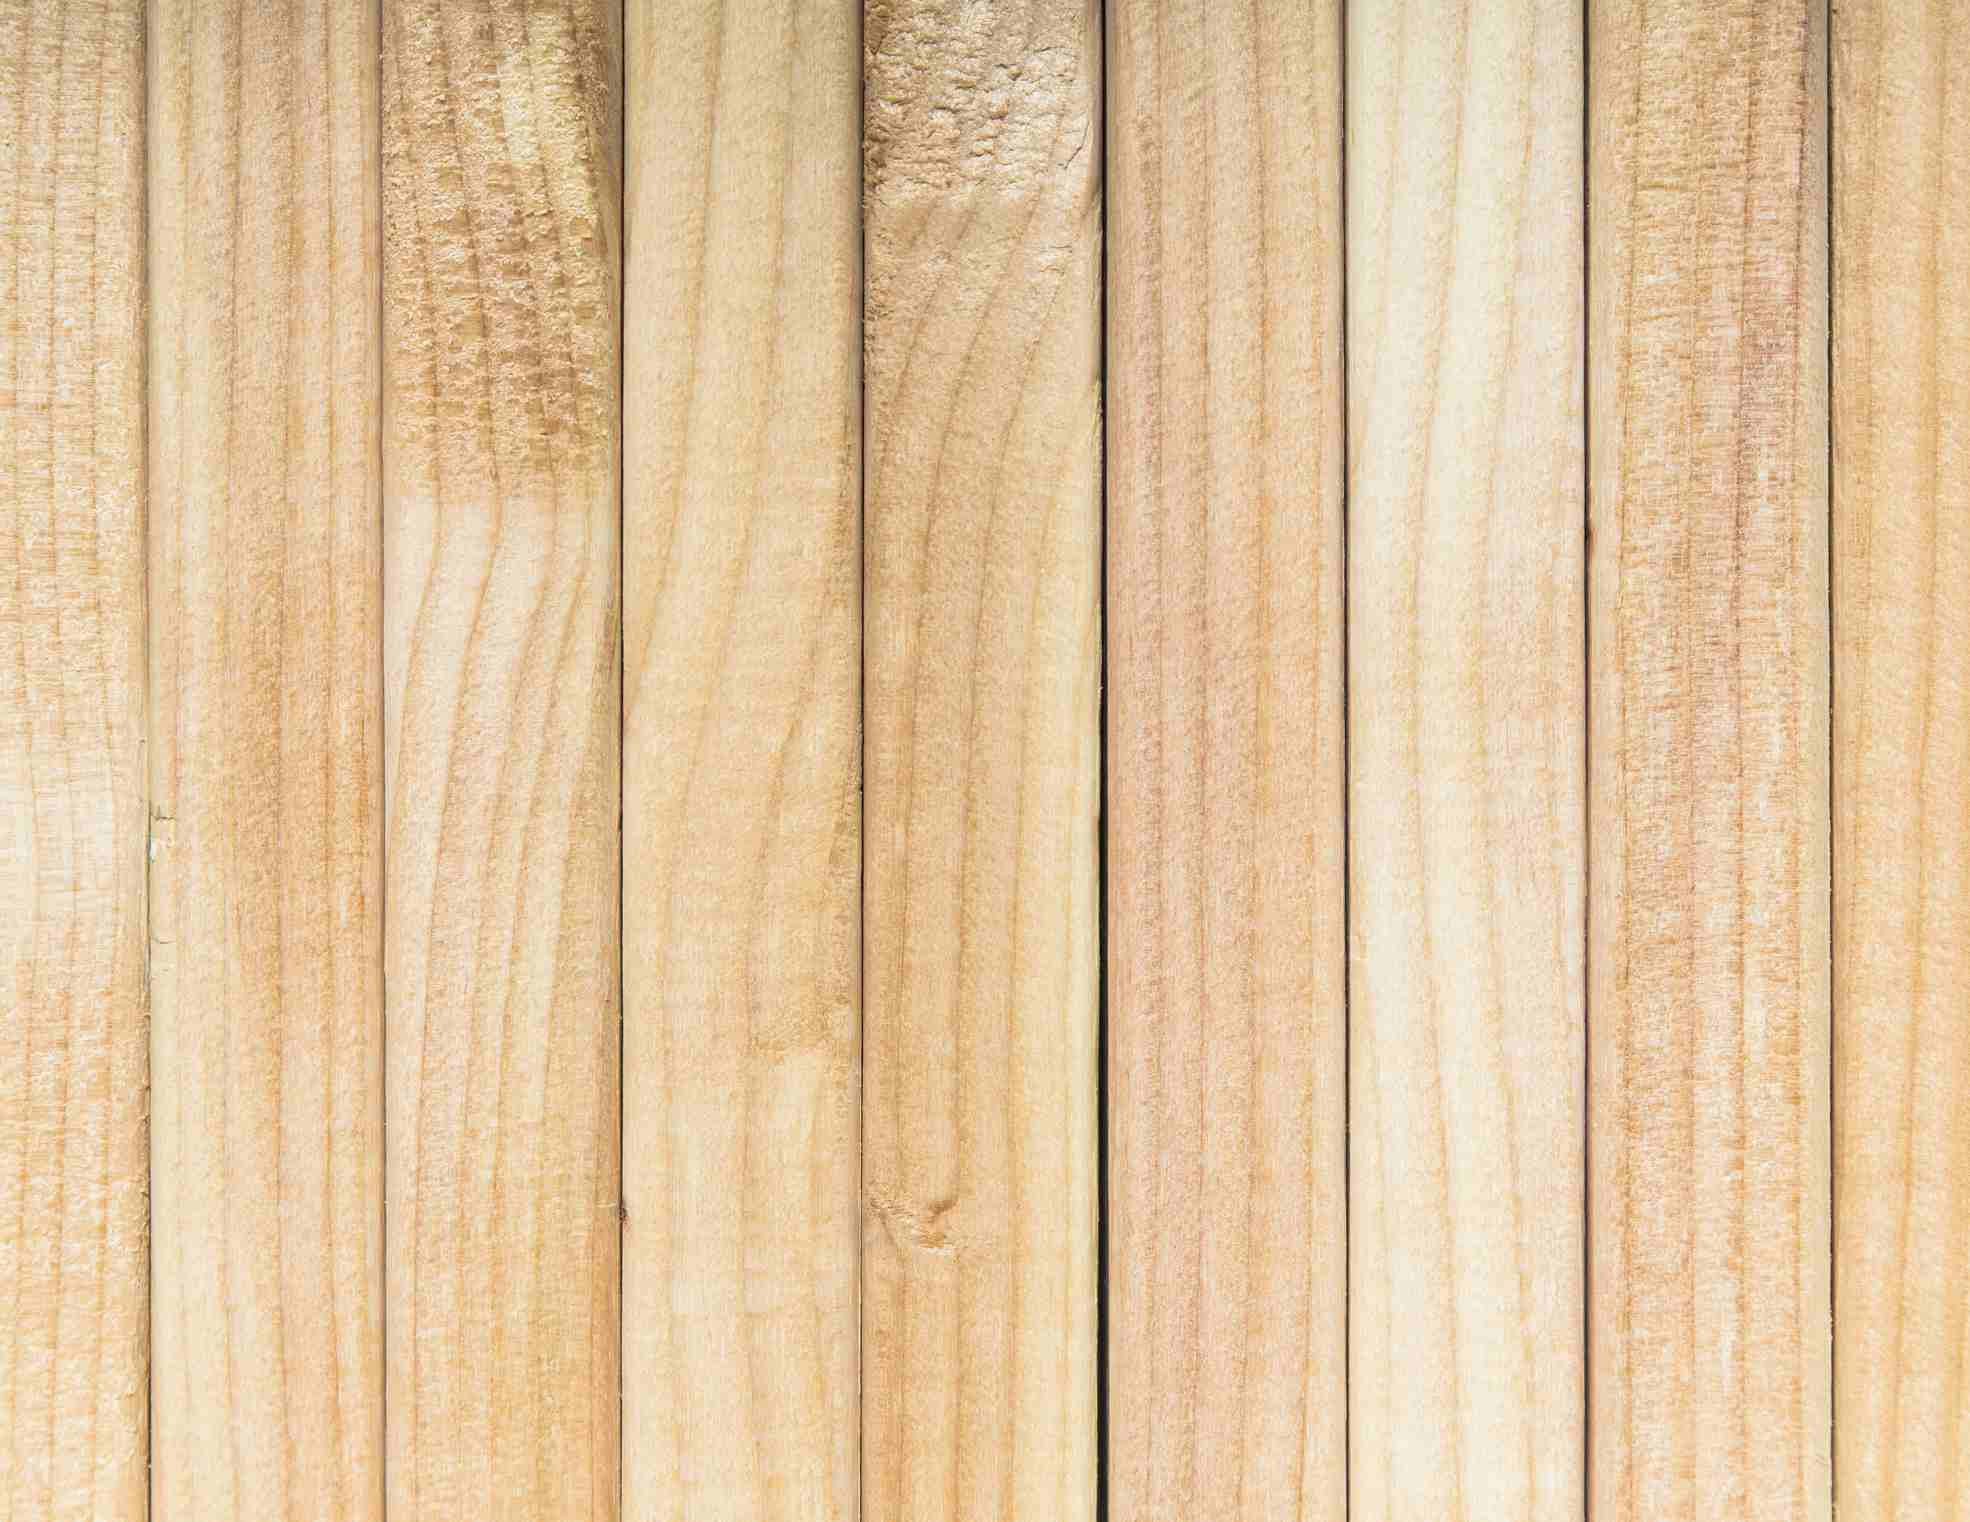 weight of hardwood flooring per square foot of standing timber prices for loggers regarding gettyimages 159395853 57824f815f9b5831b575e3ea